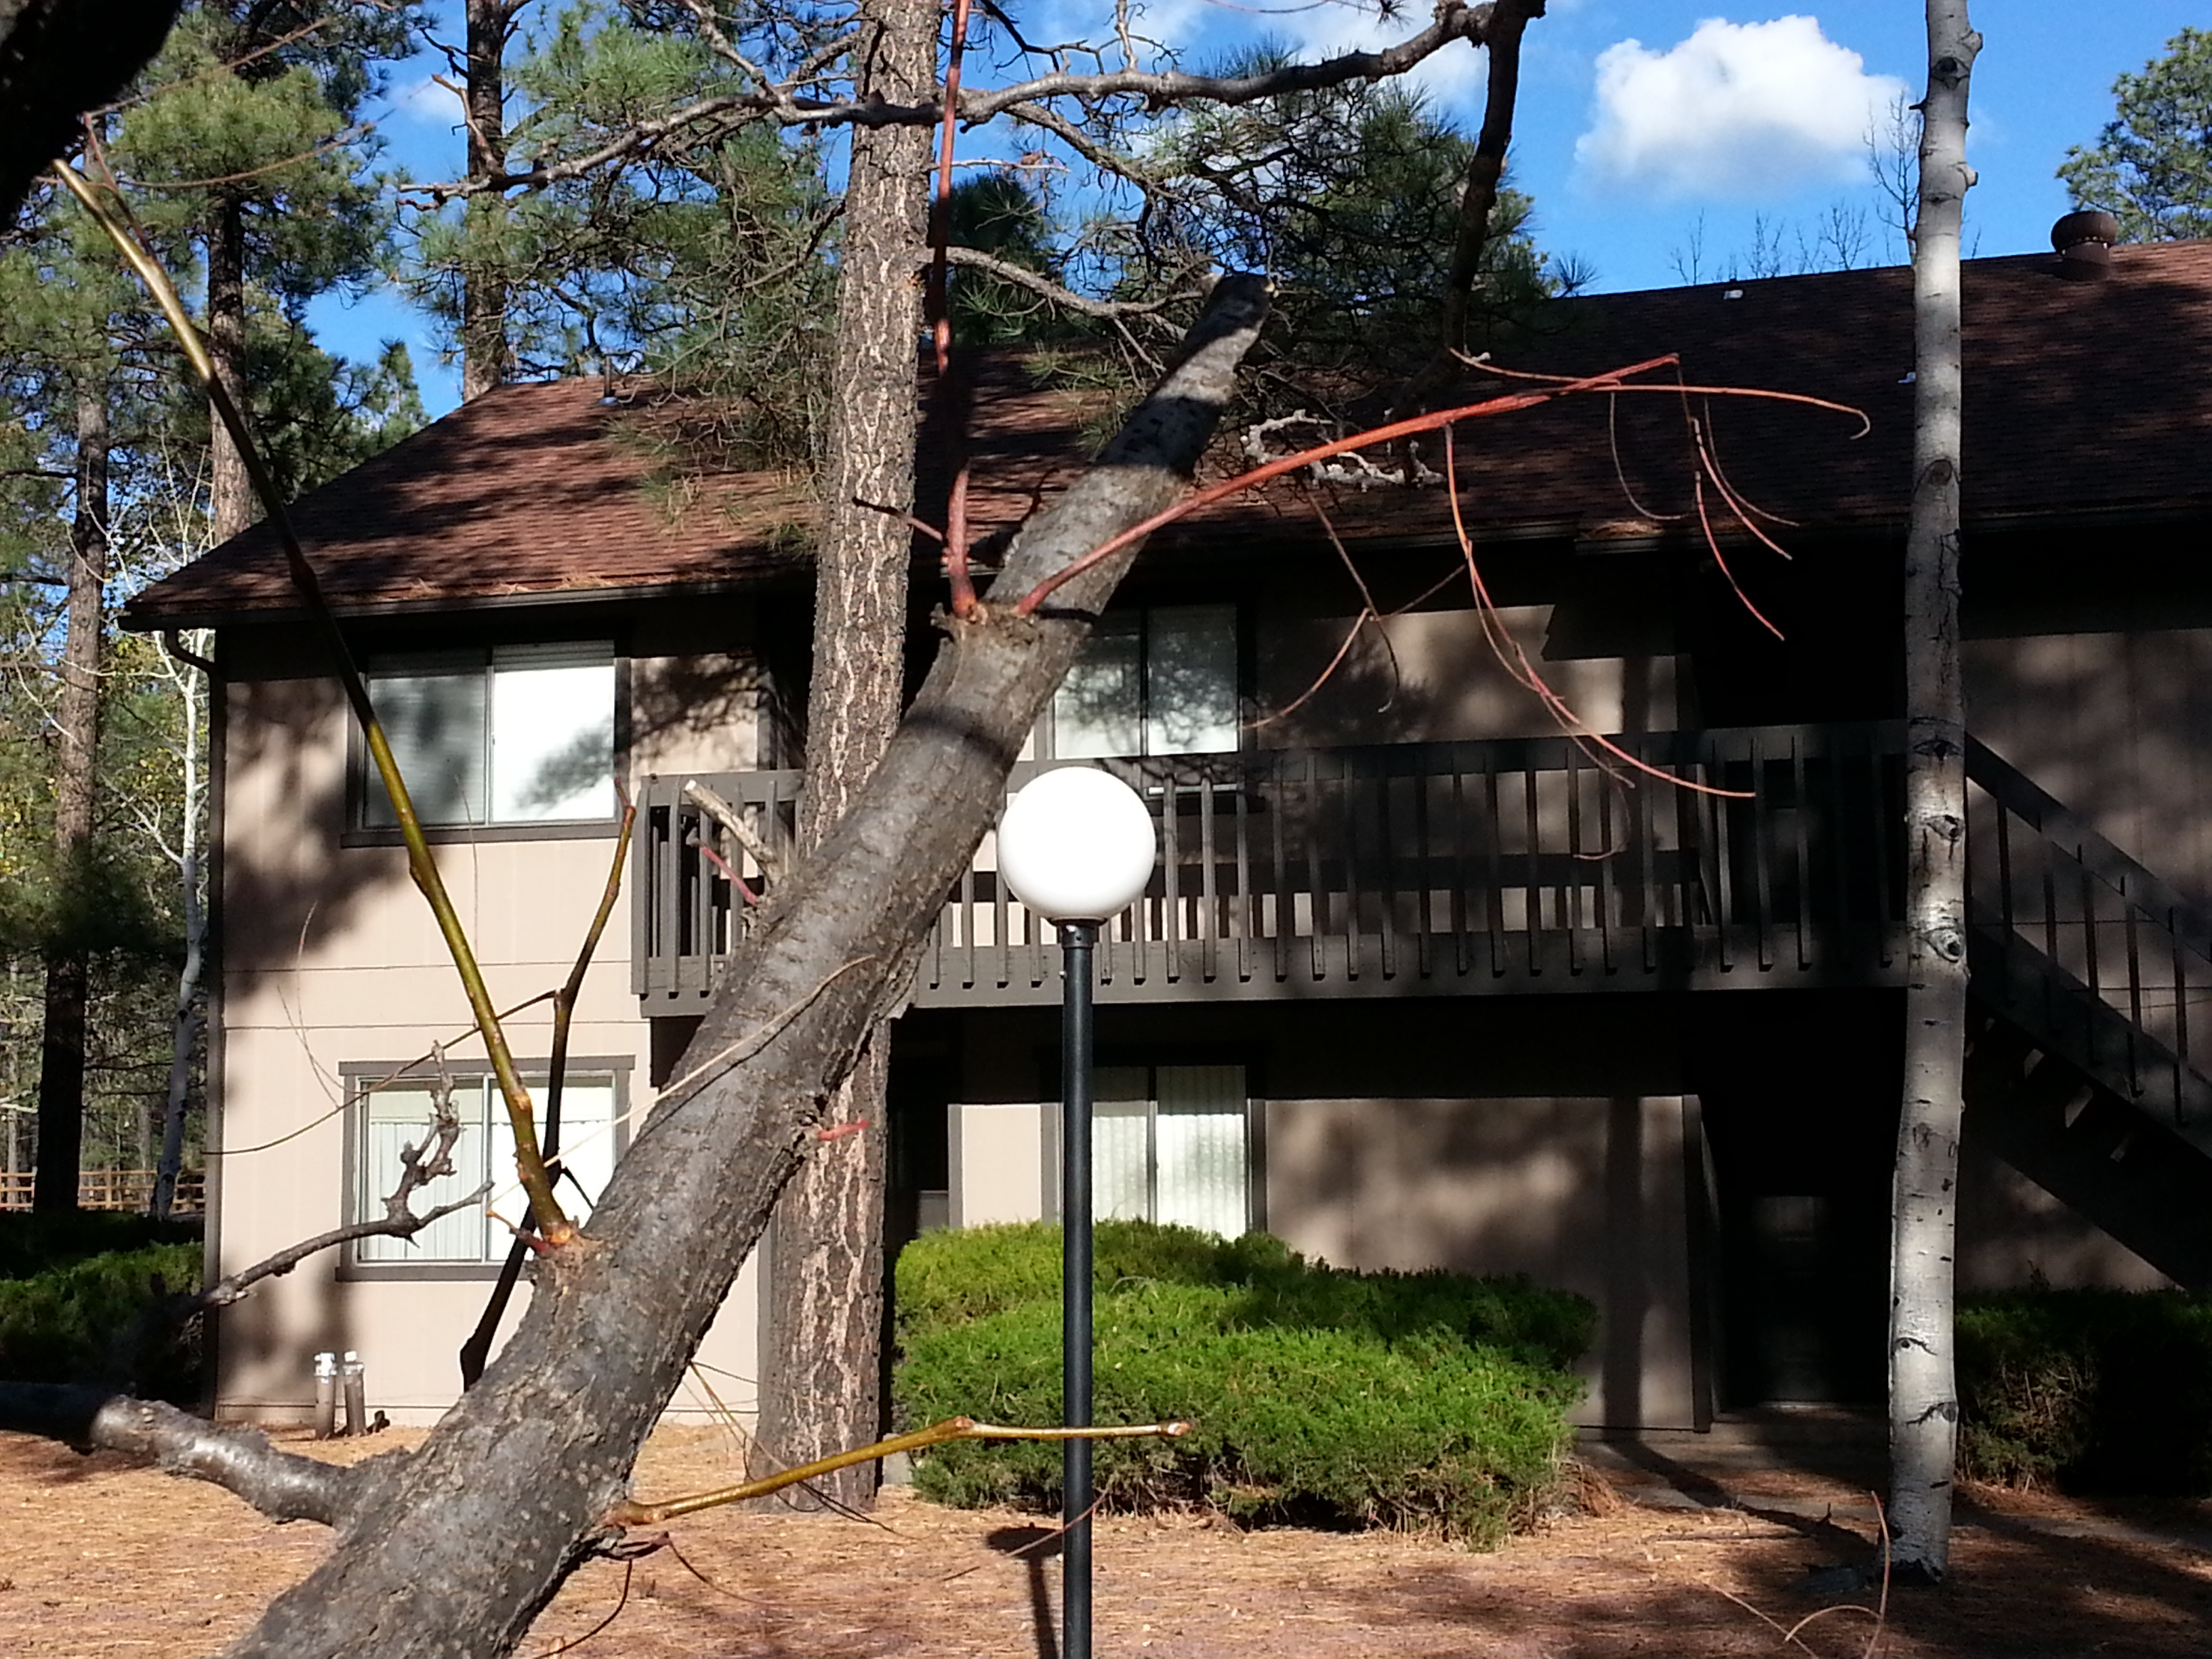 Green's Condo in Pinetop, Arizona